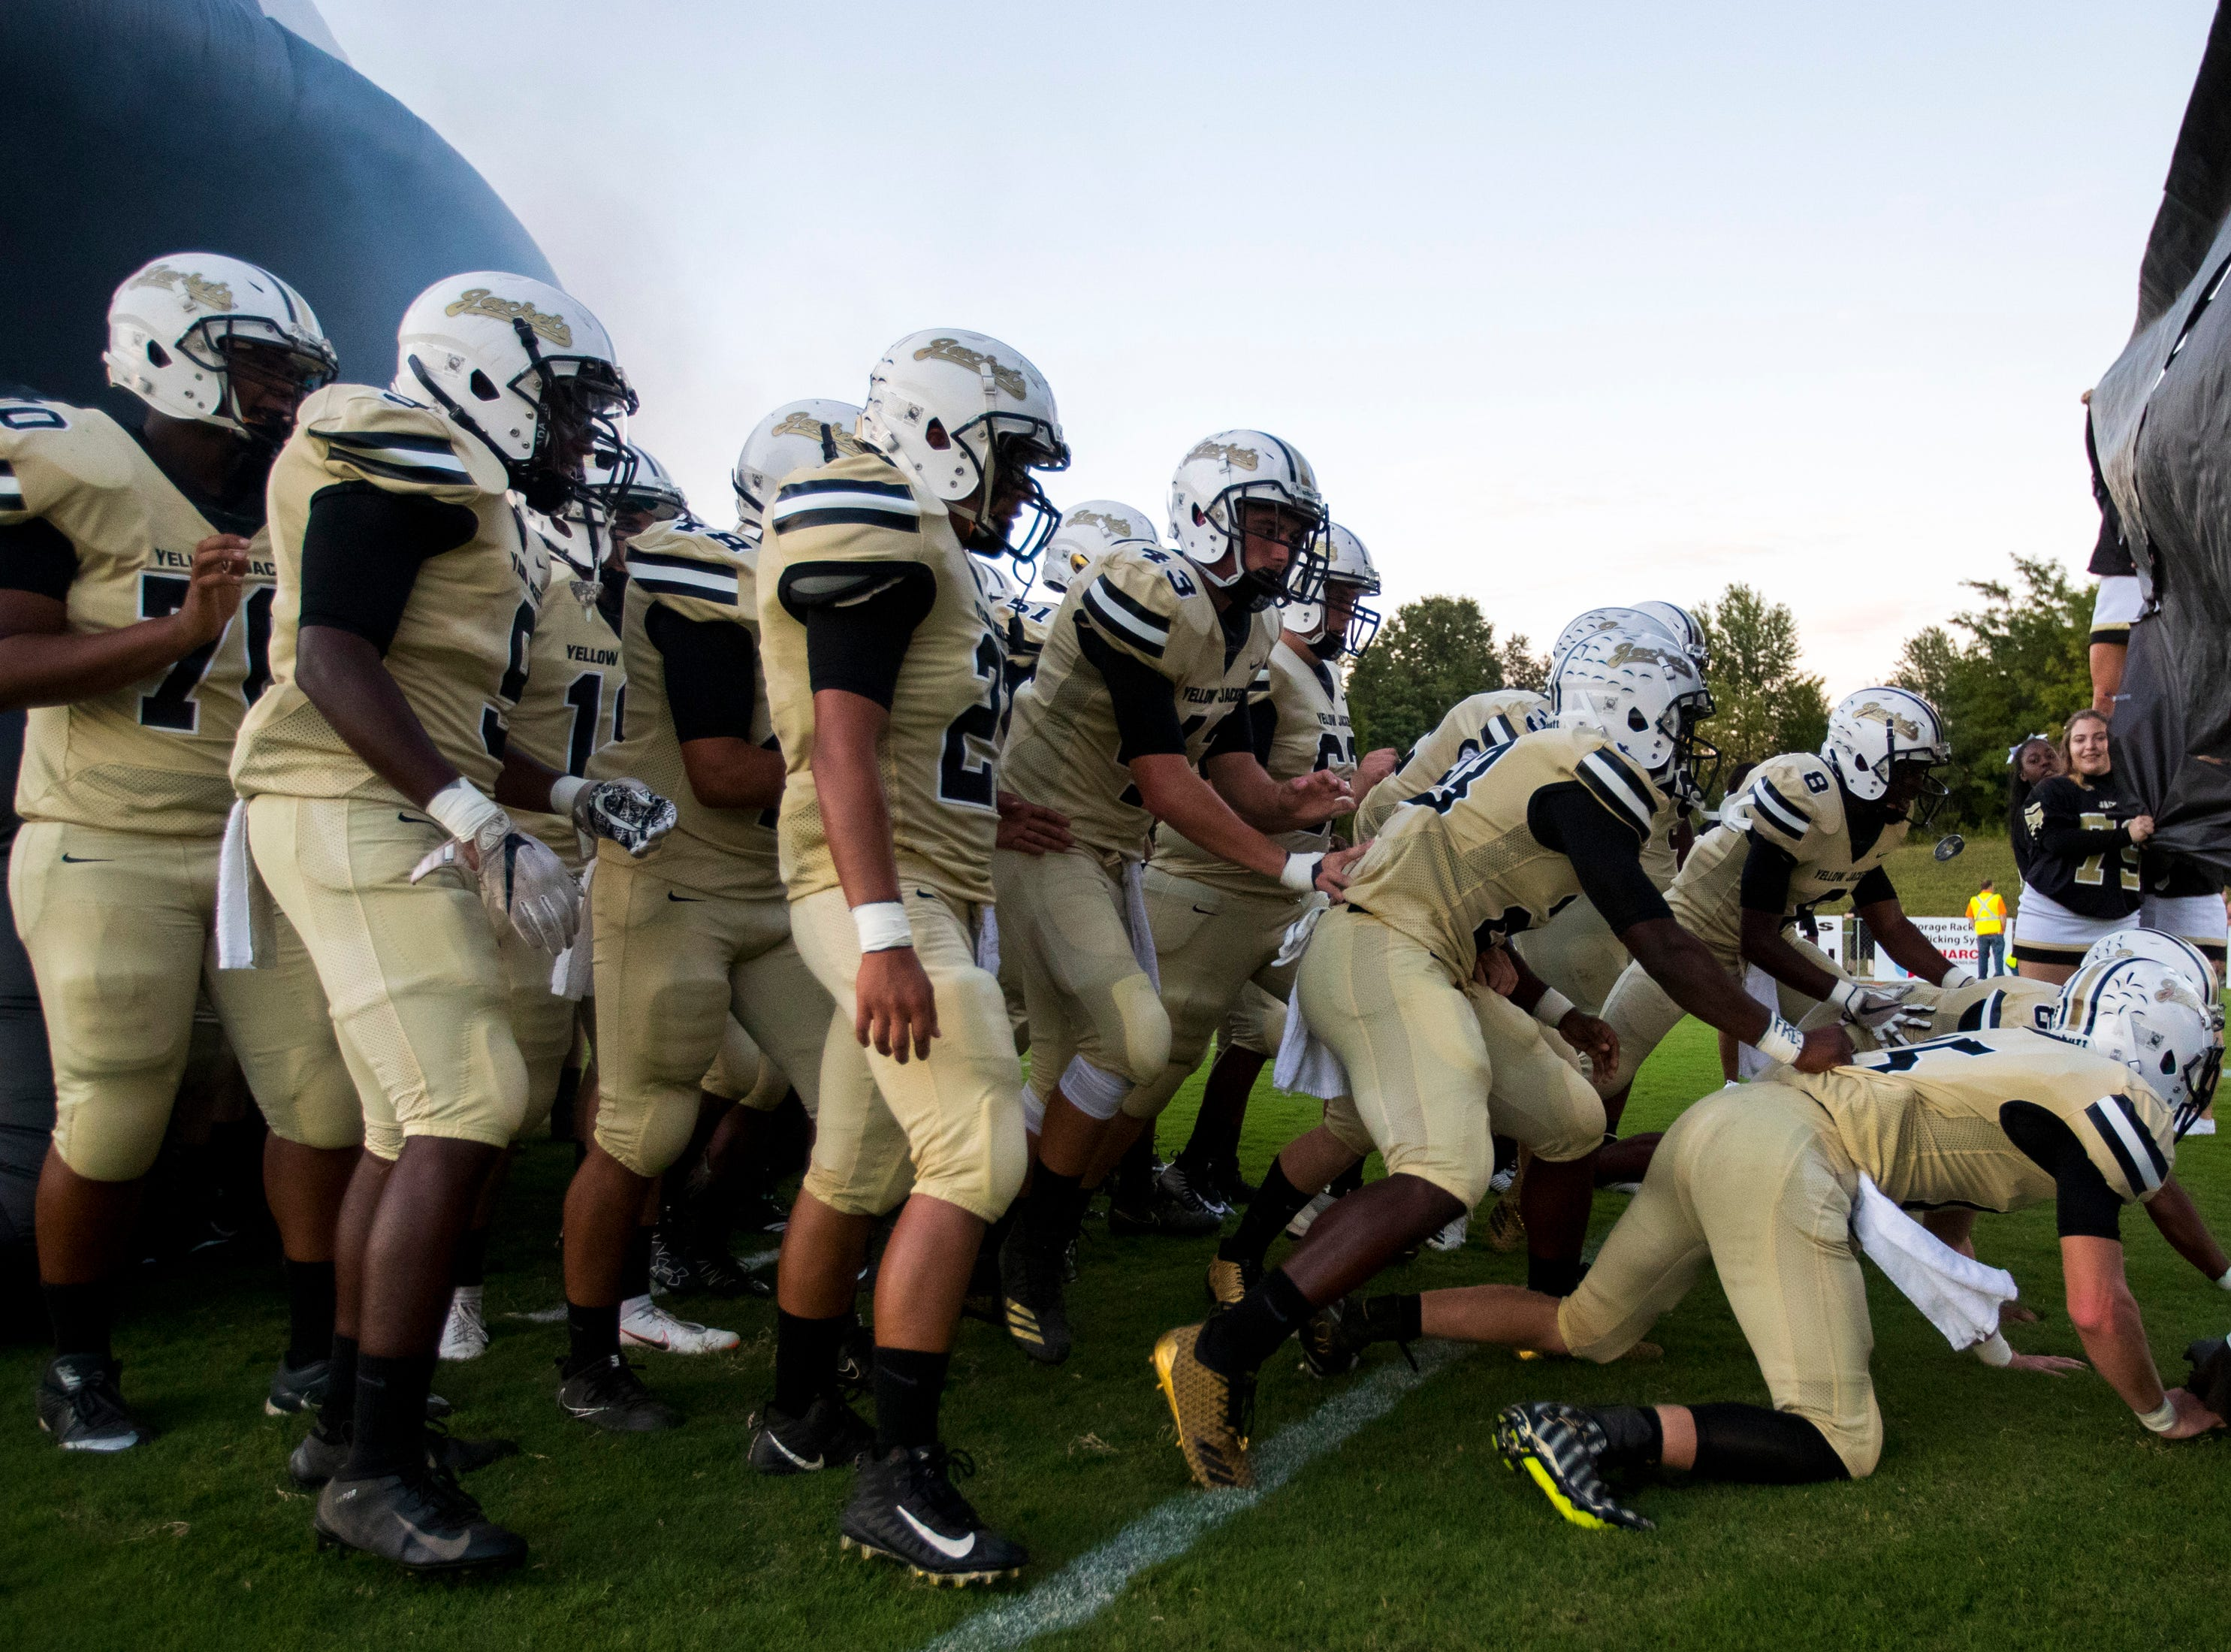 Springfield's players get ready to take the field before Springfield's game against White House at Springfield High School in Springfield on Friday, Sept. 14, 2018.